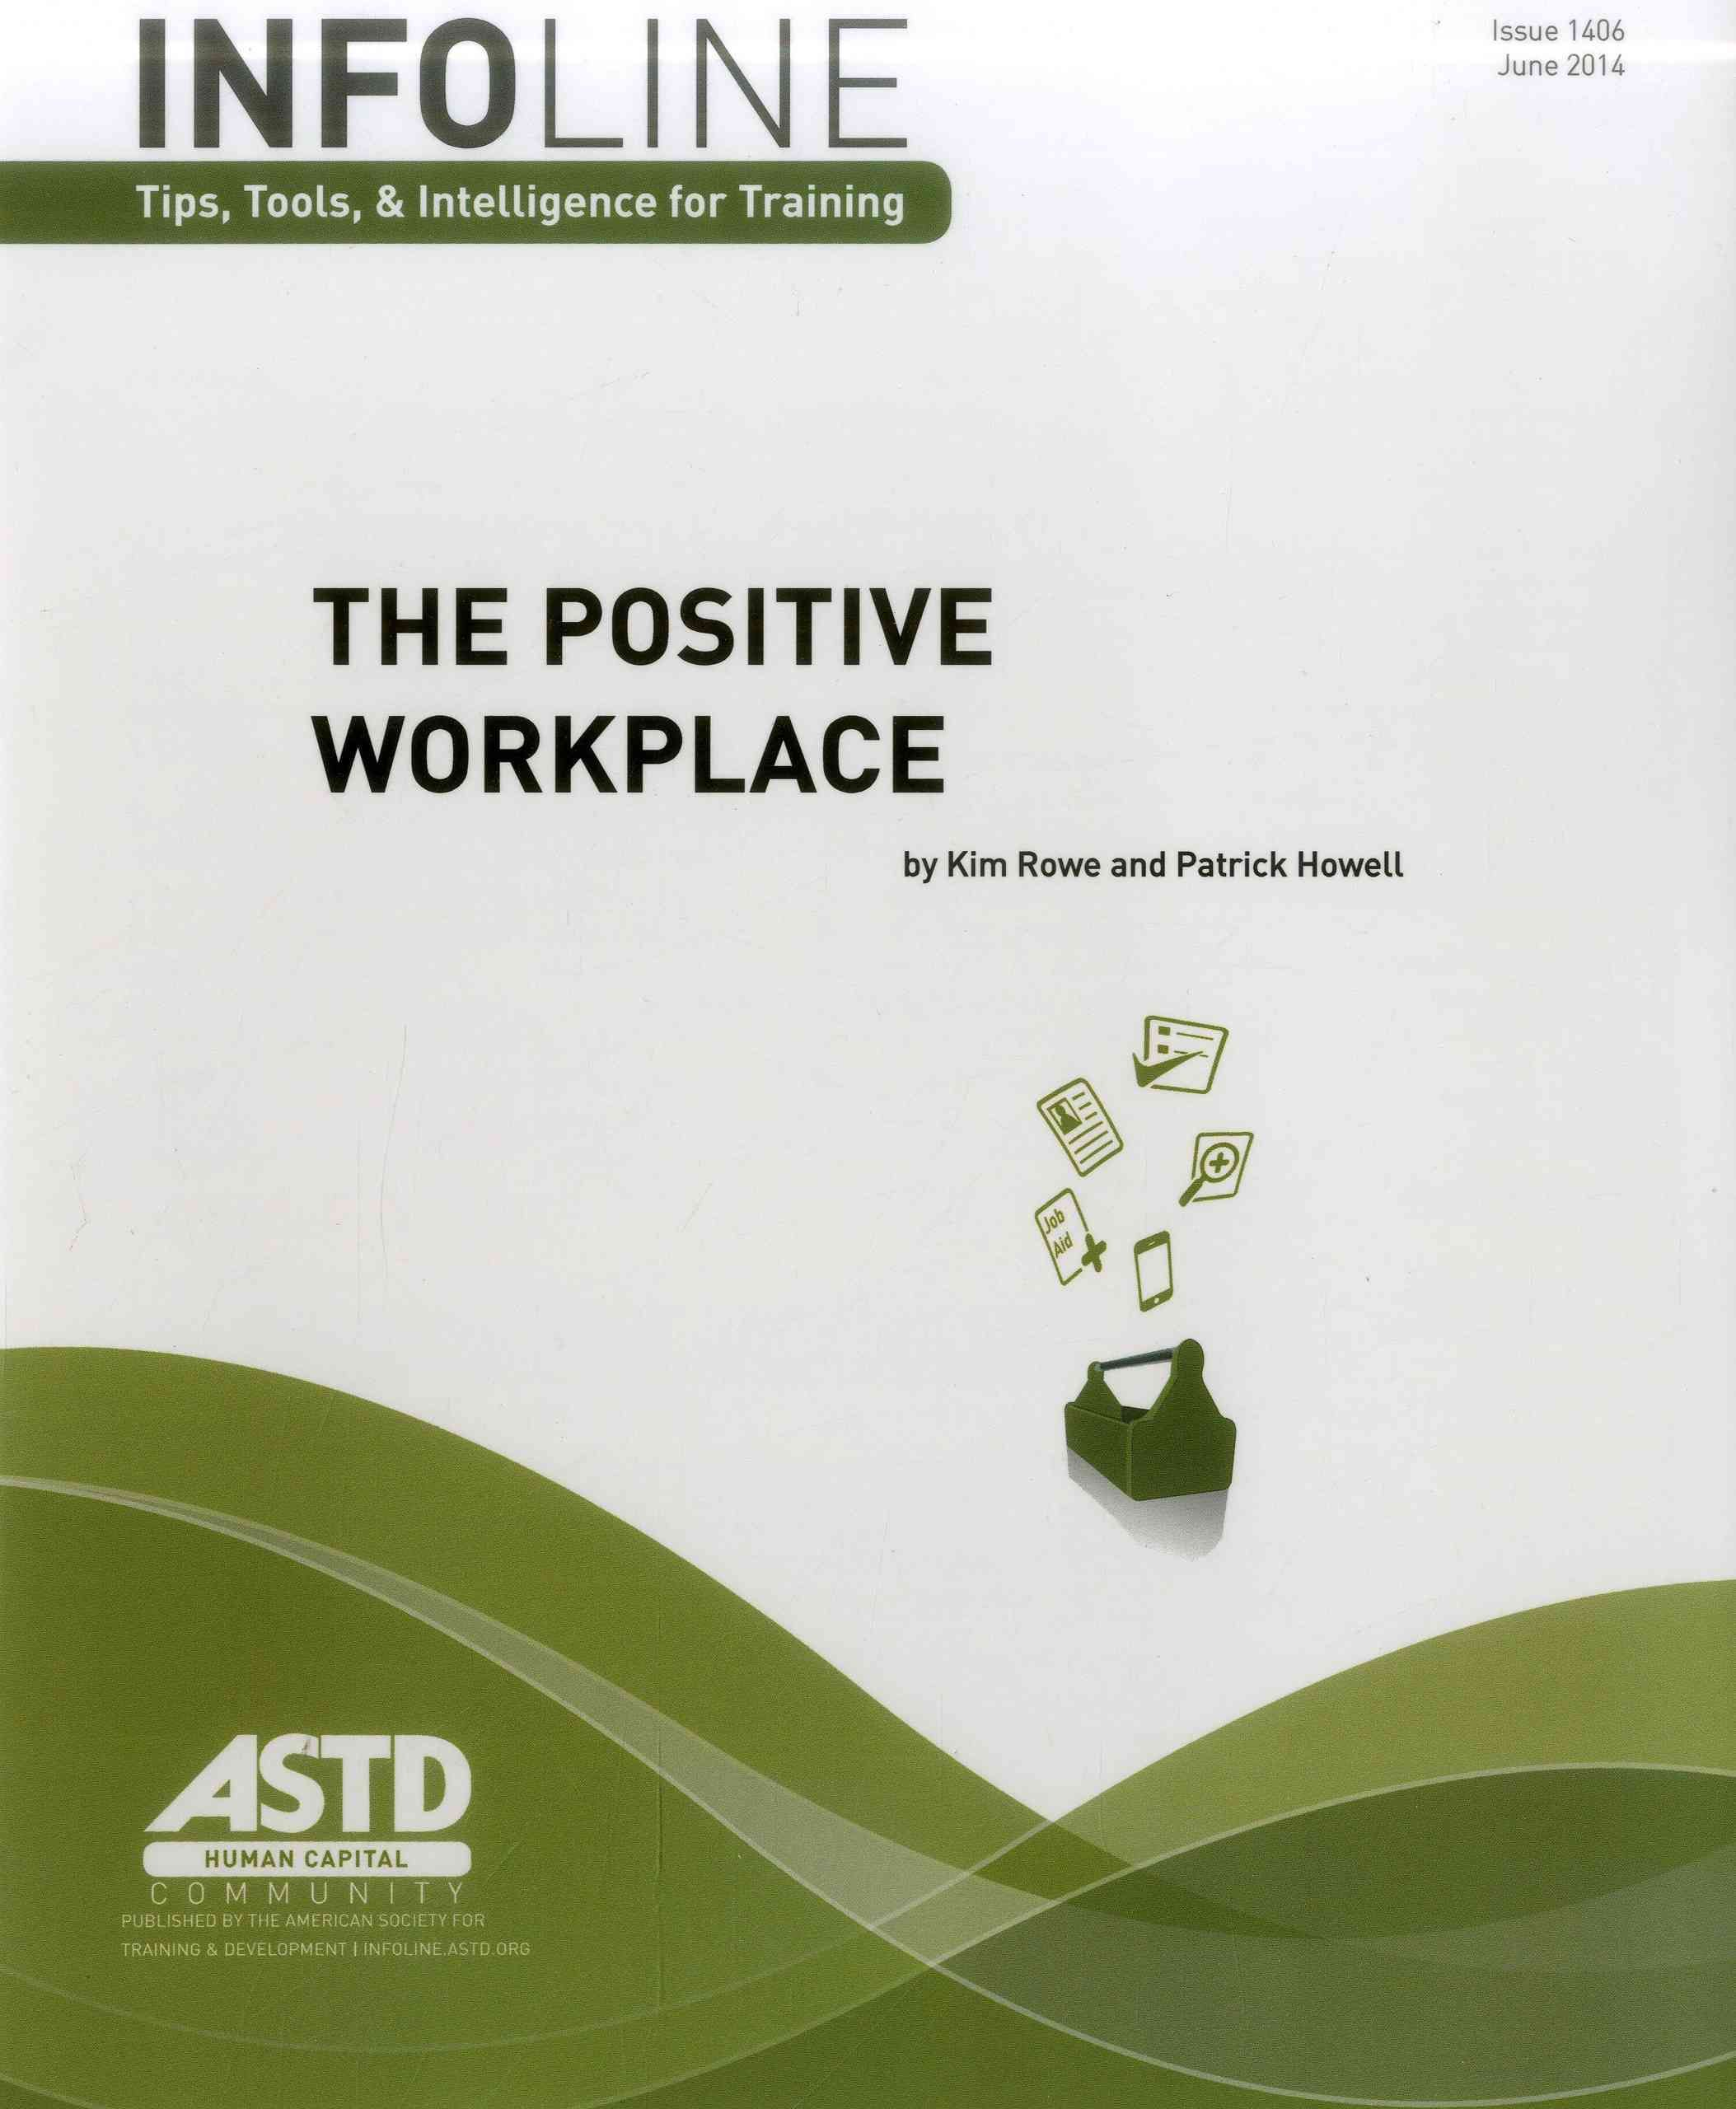 The Positive Workplace